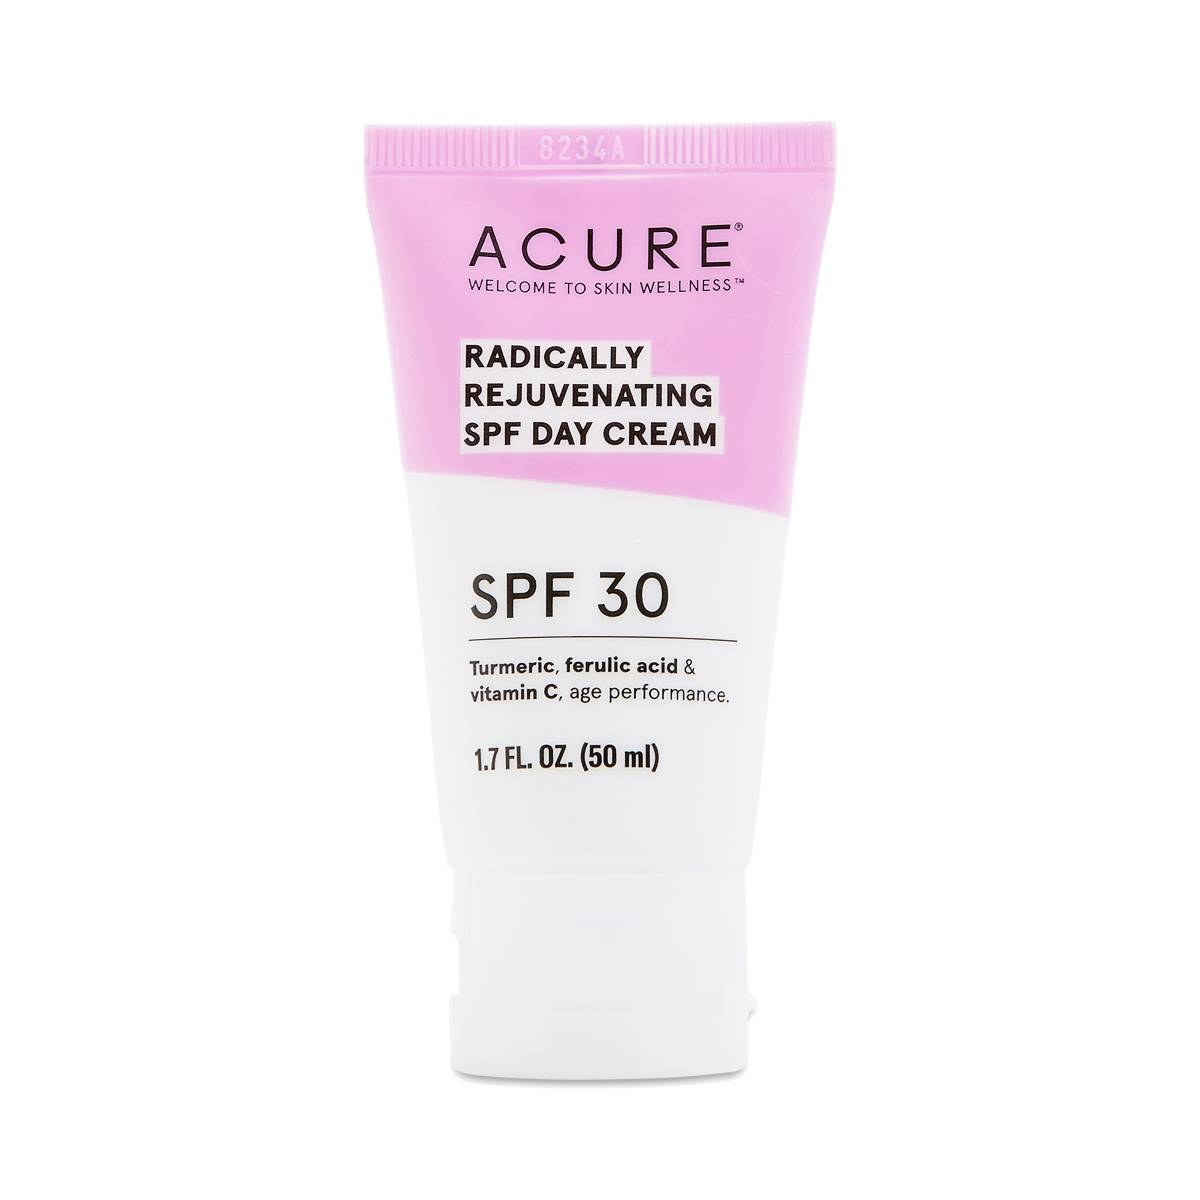 Acure Radically Rejuvenating Spf30 Day Cream